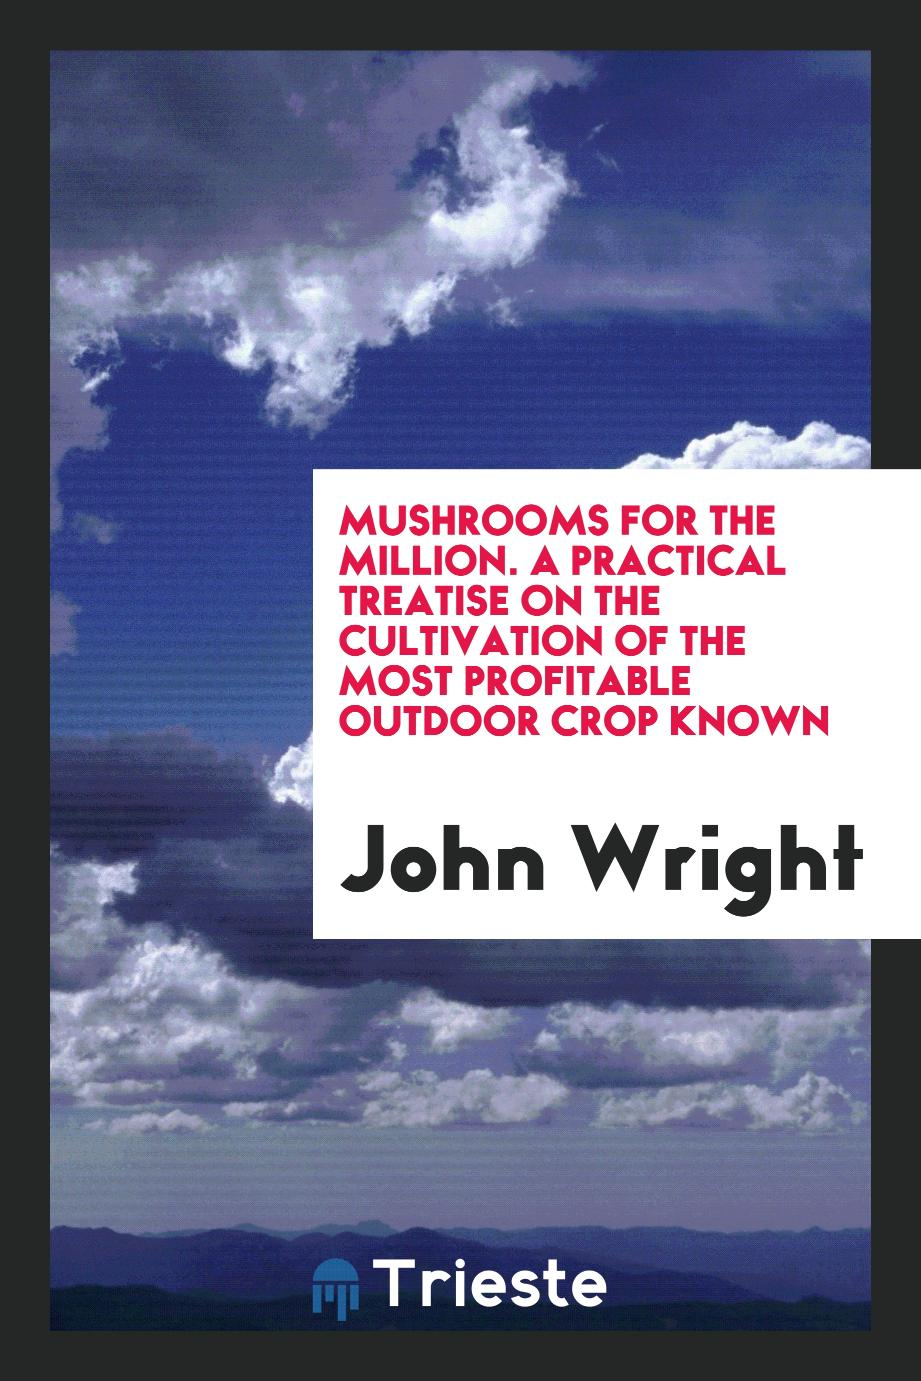 Mushrooms for the Million. A Practical Treatise on the Cultivation of the Most Profitable Outdoor Crop Known